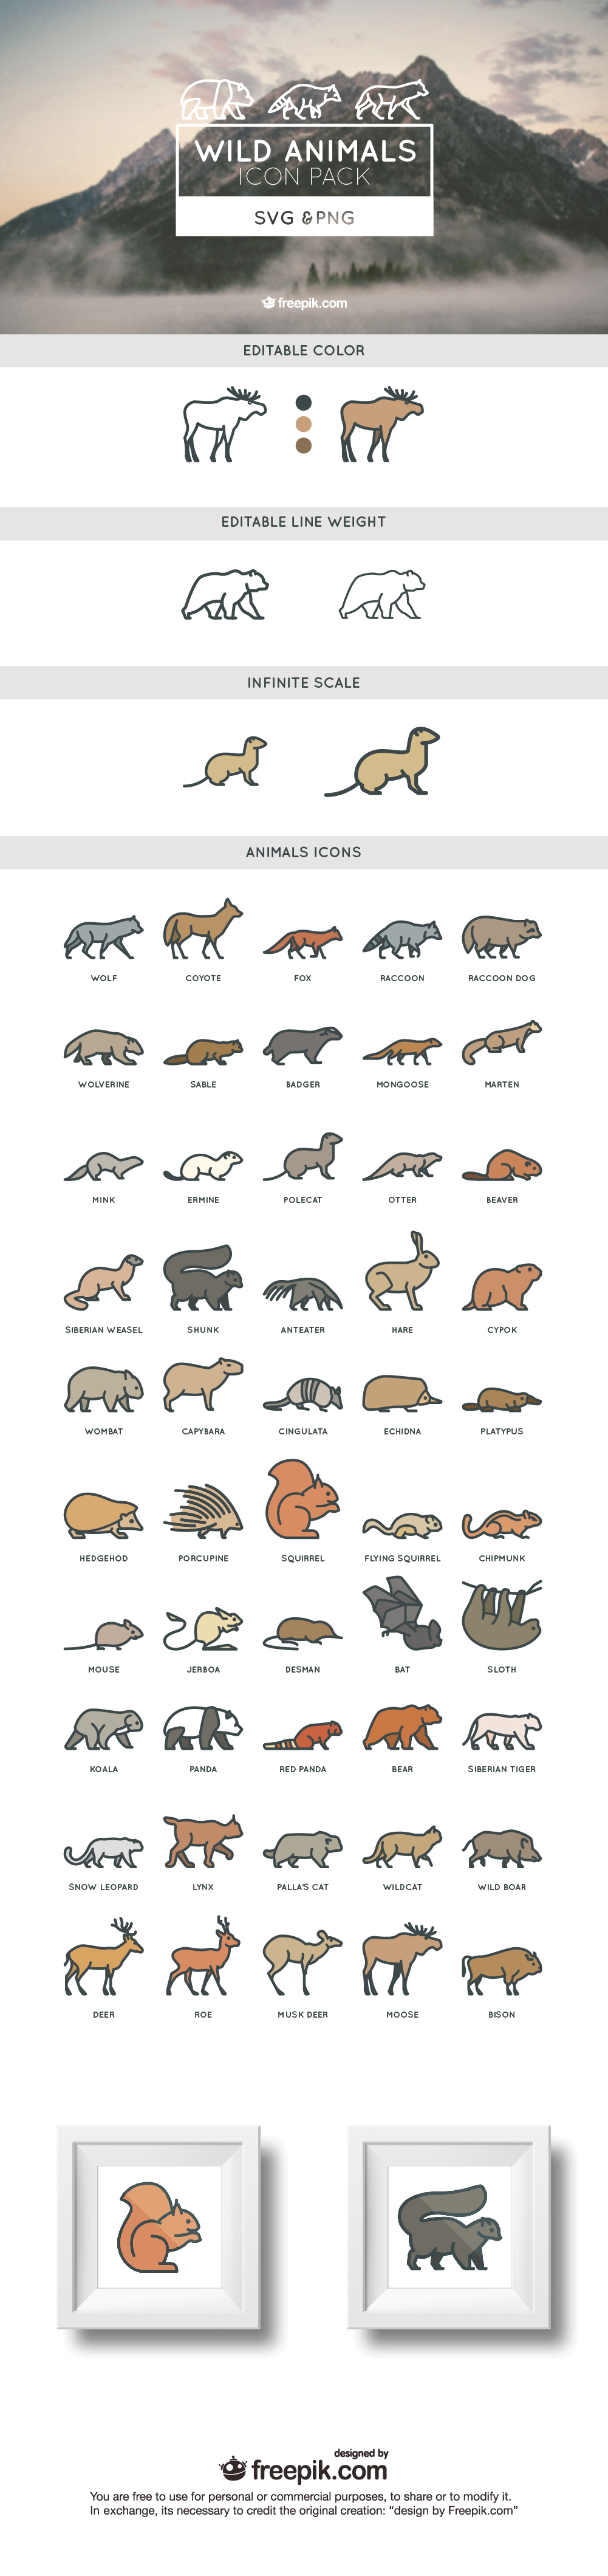 ANIMALS COVER 01 01 50 wild free animals SVG and PNG icon set